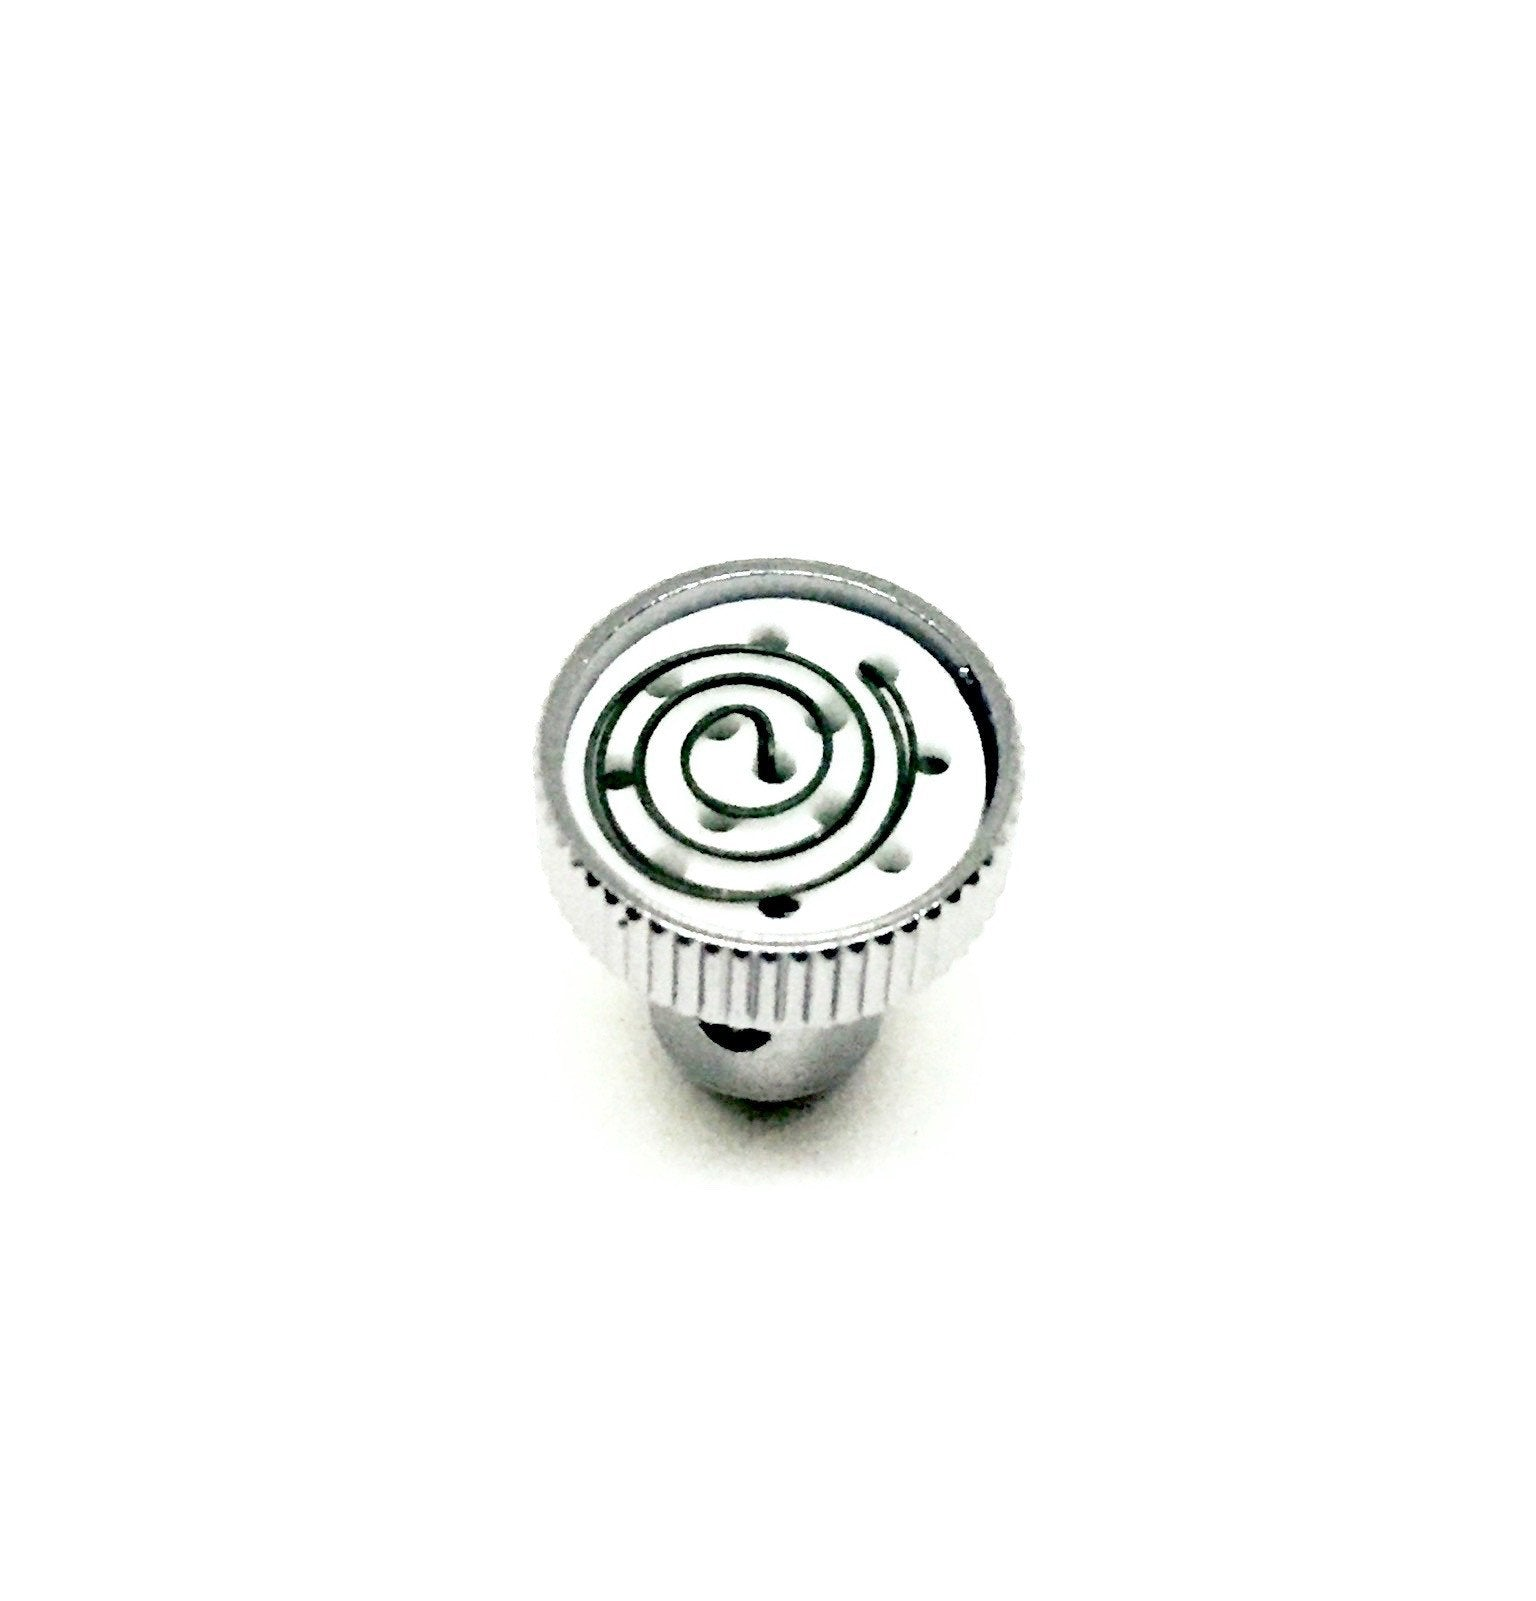 Yocan Evolve-D Replacement Coil (5 pack)